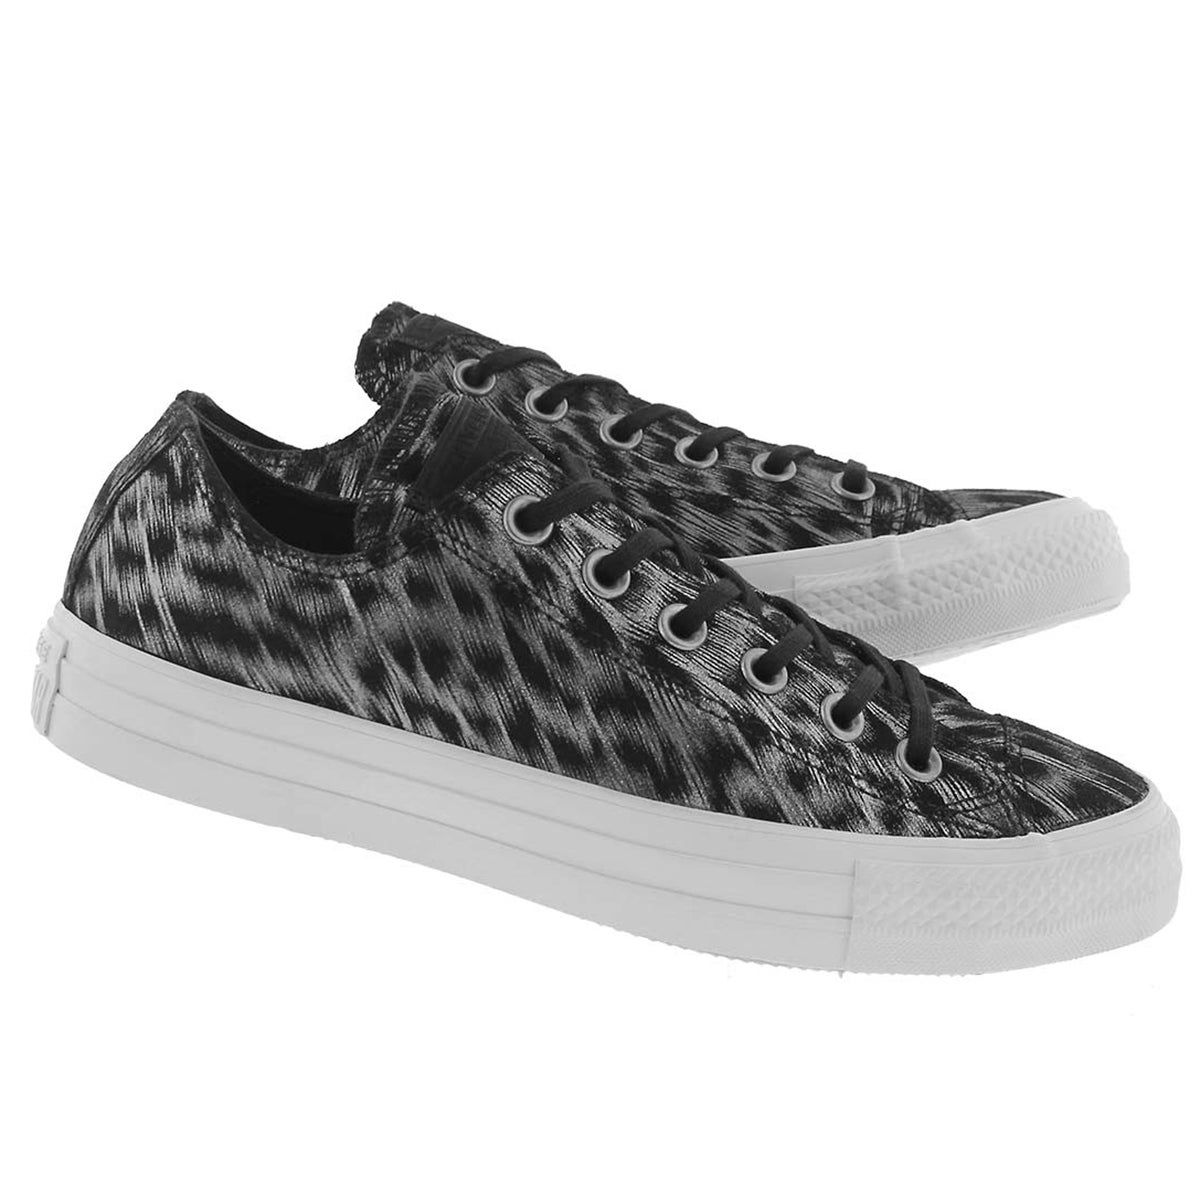 Lds CT A/S Classic Animal print blk snkr